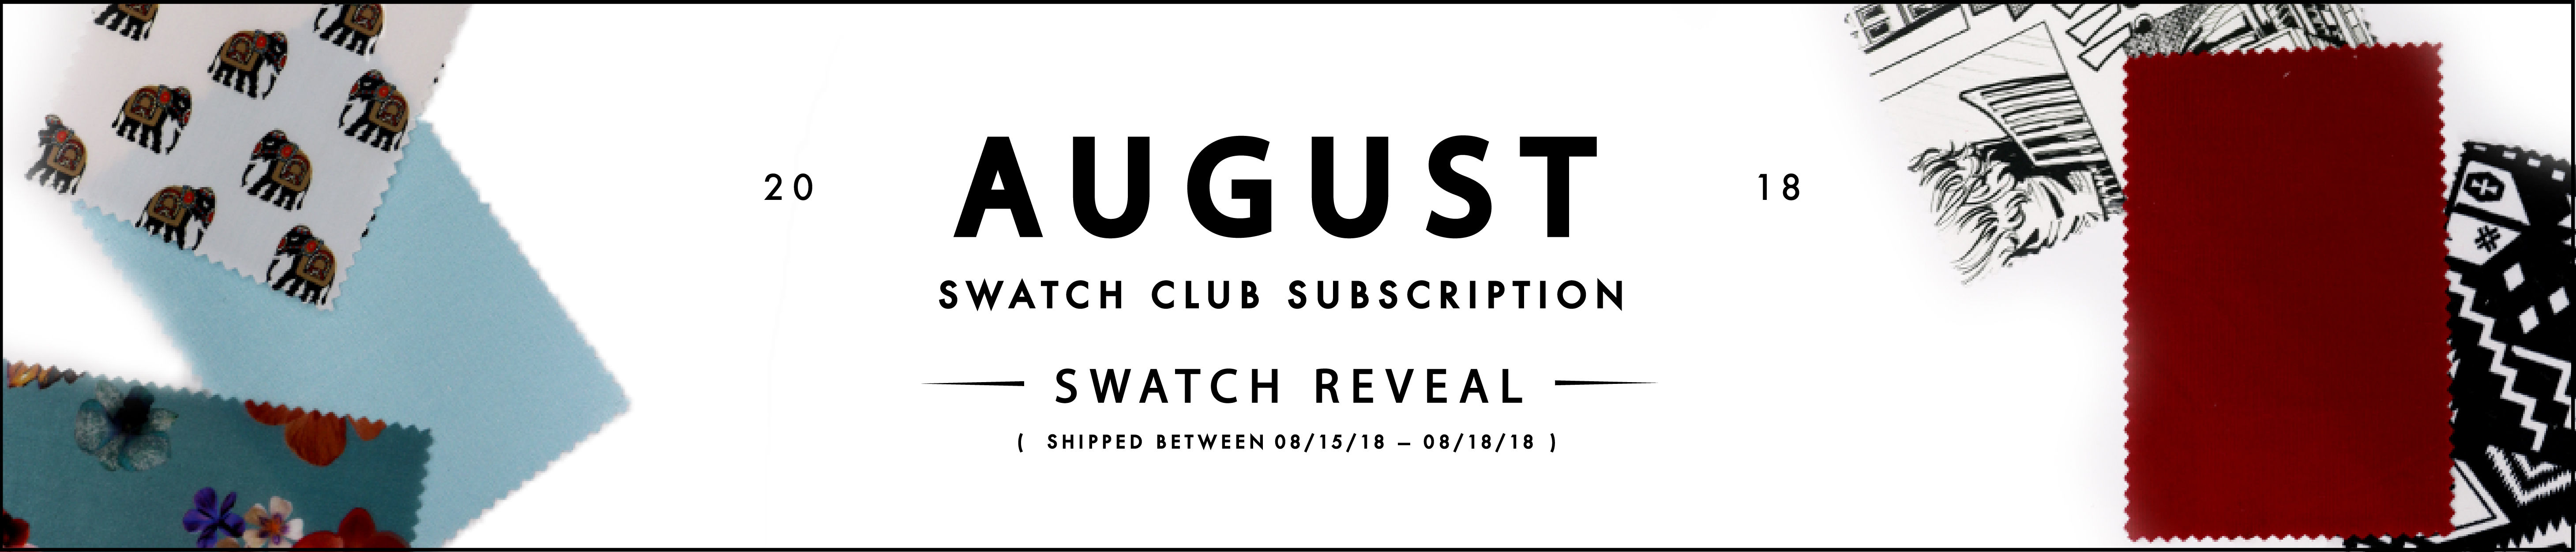 August Swatch Club